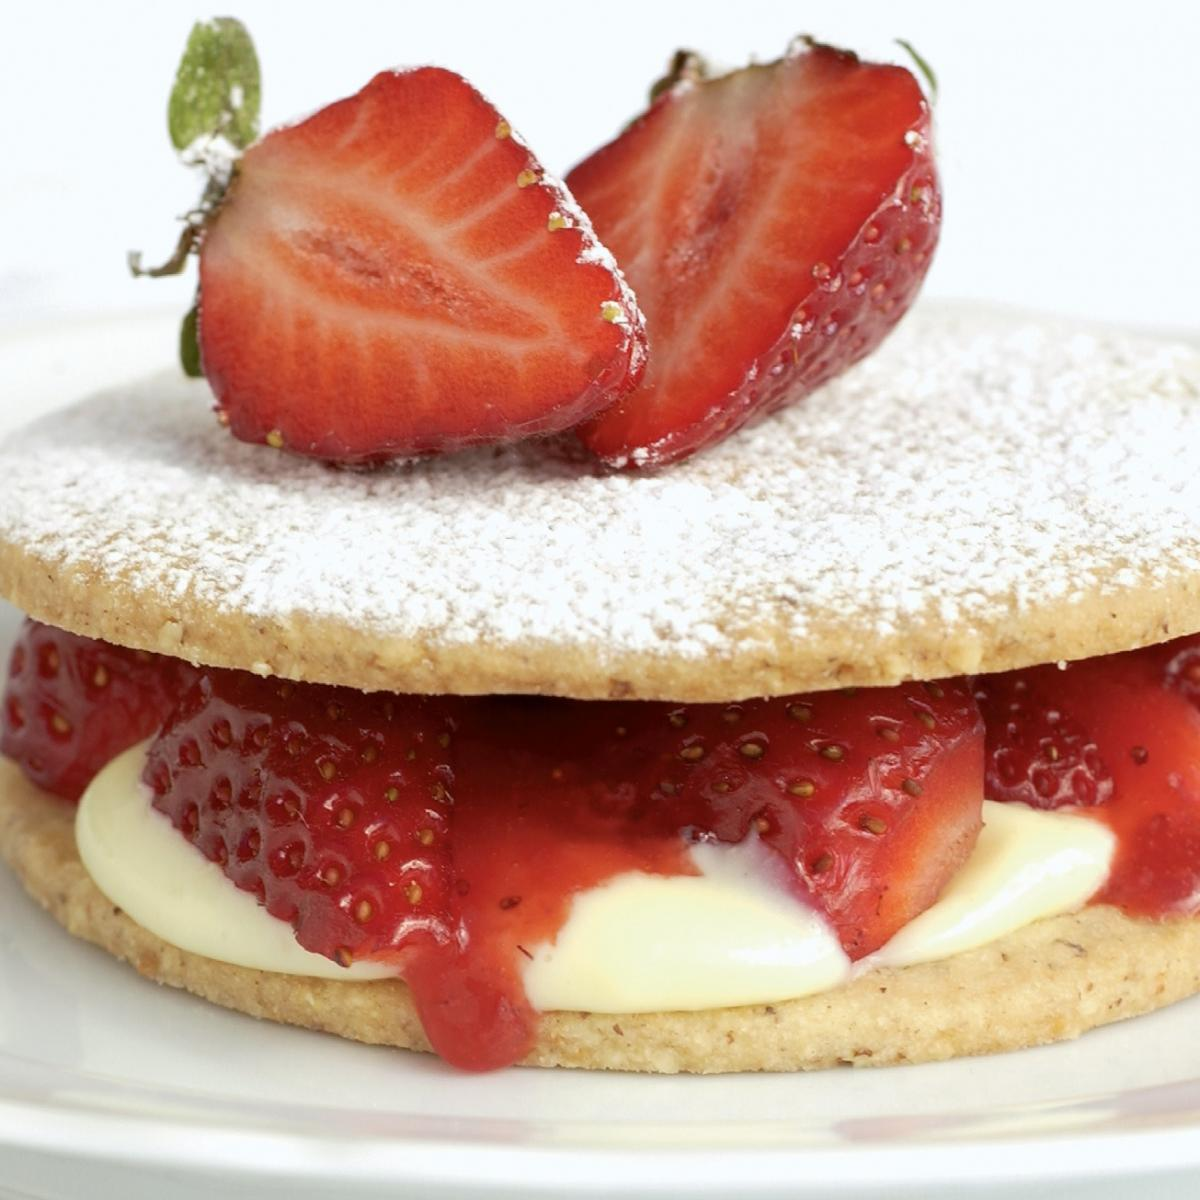 Vegetarian strawberry hazelnut shortcakes with strawberry puree